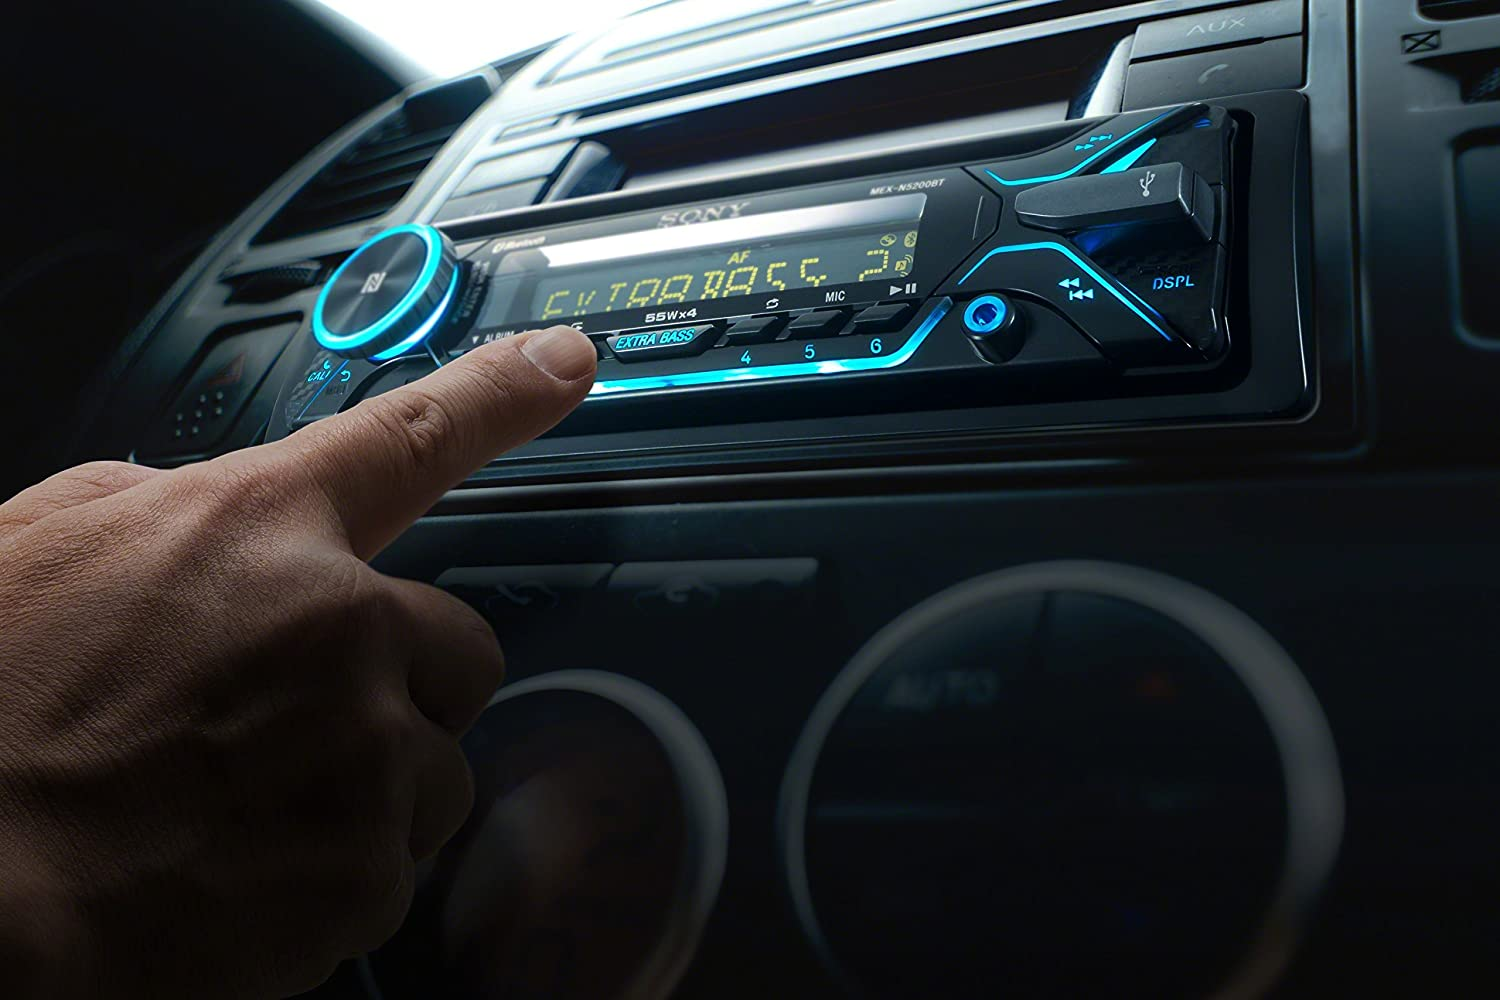 Disco by manufacturer Sony MEX-N5200BT CD Receiver with Bluetooth external microphone and SiriusXM Ready